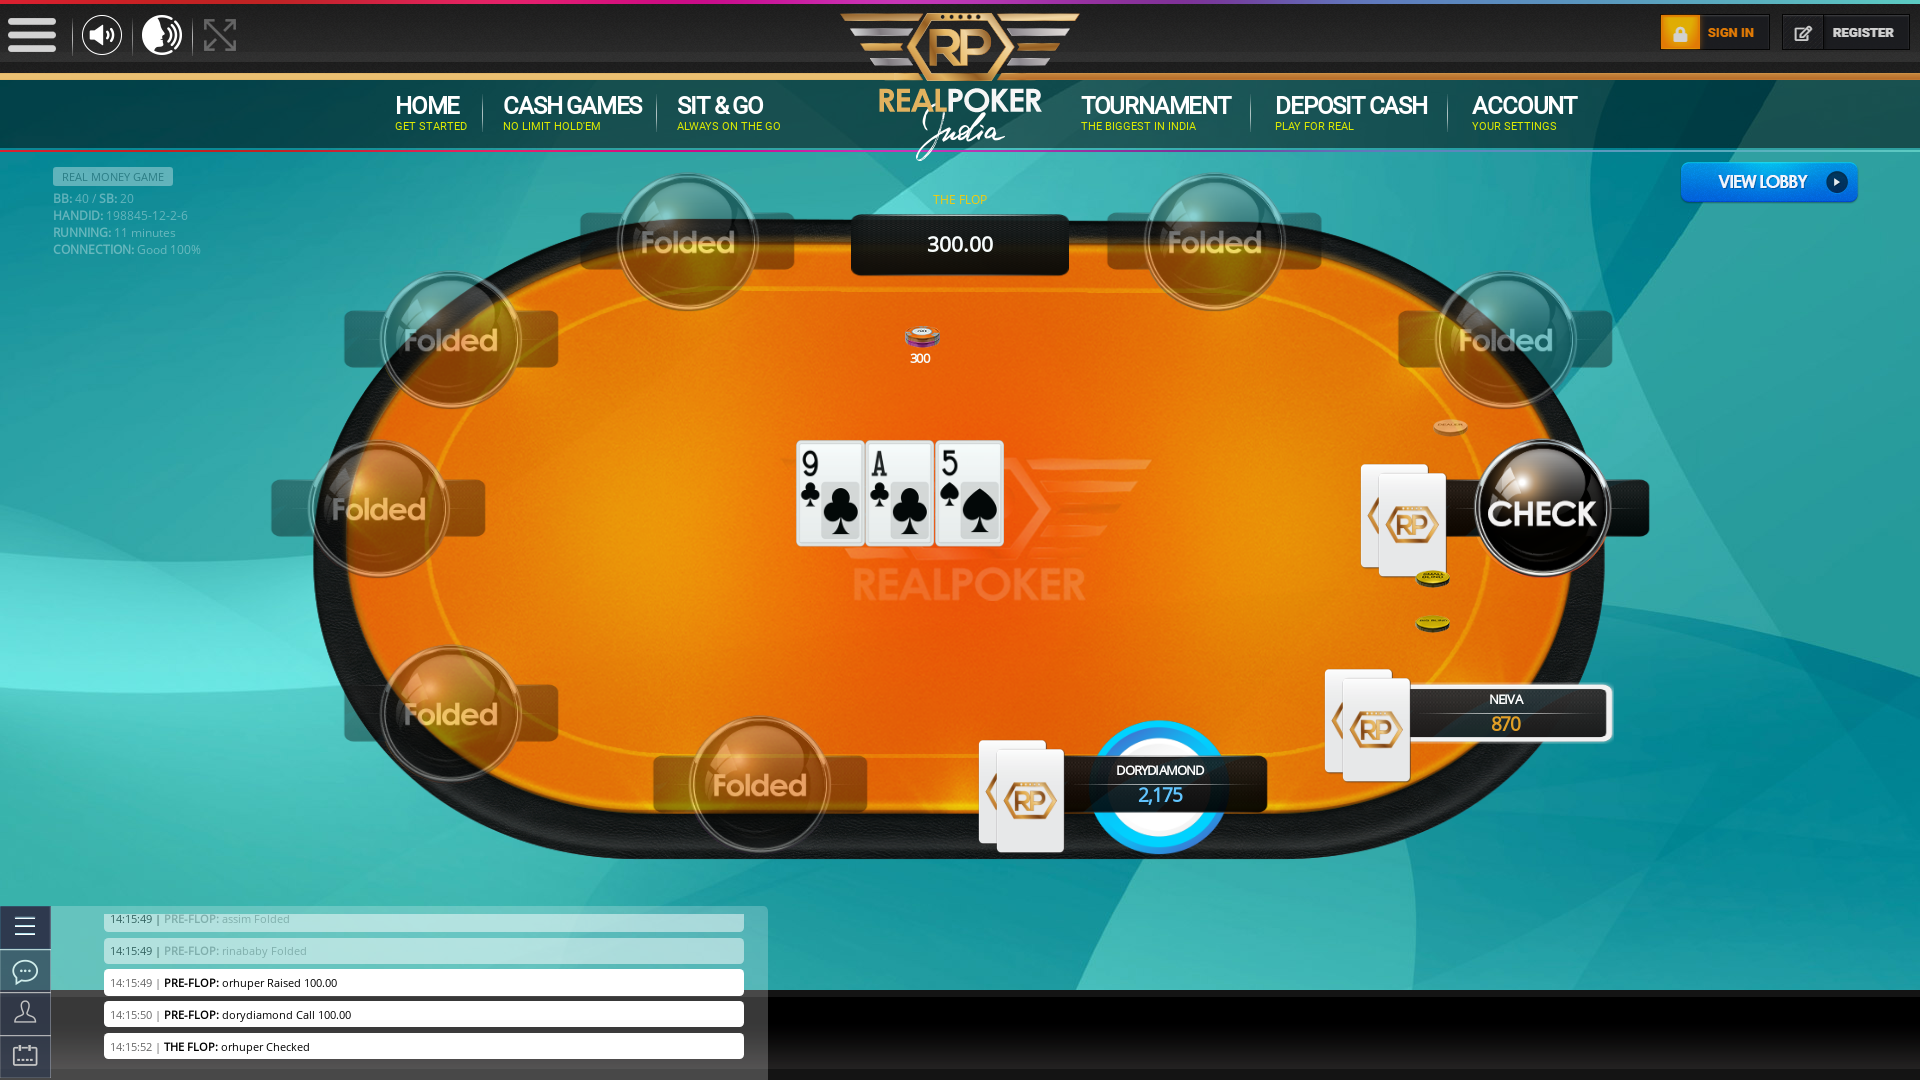 Indian poker on a 10 player table in the 11th minute